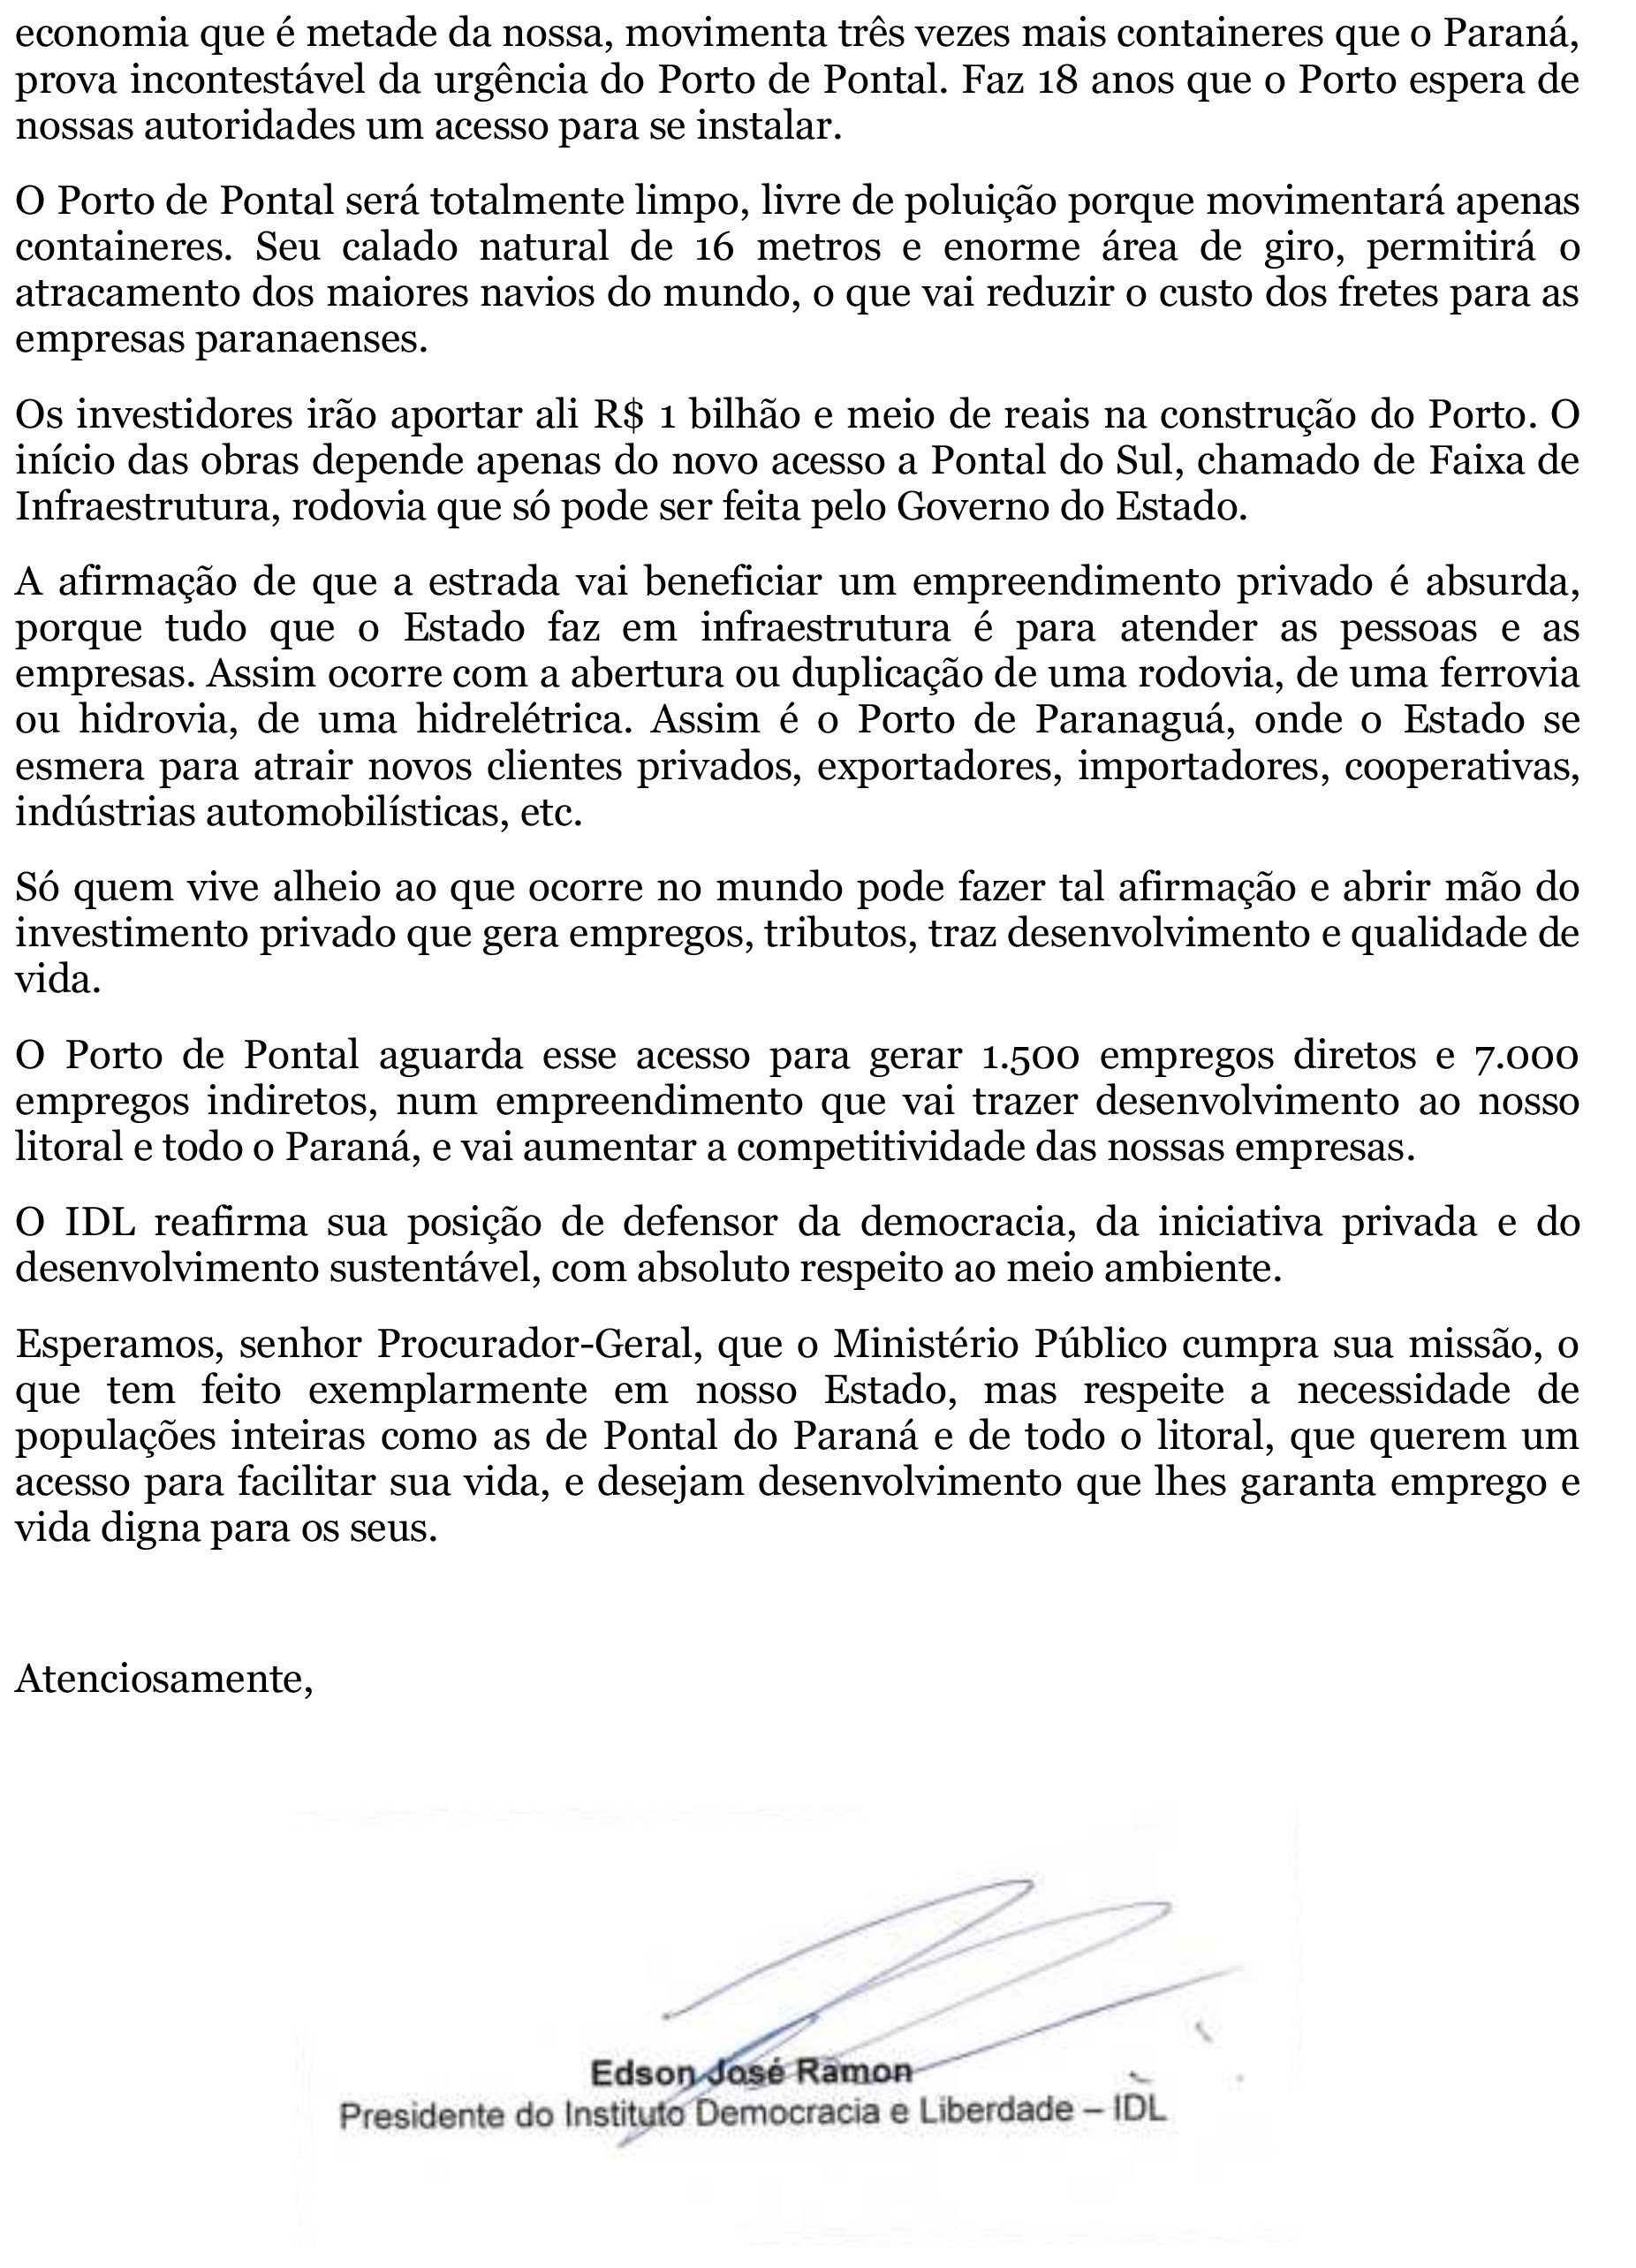 Carta defendendo o Porto de Pontal REVISADA III-2